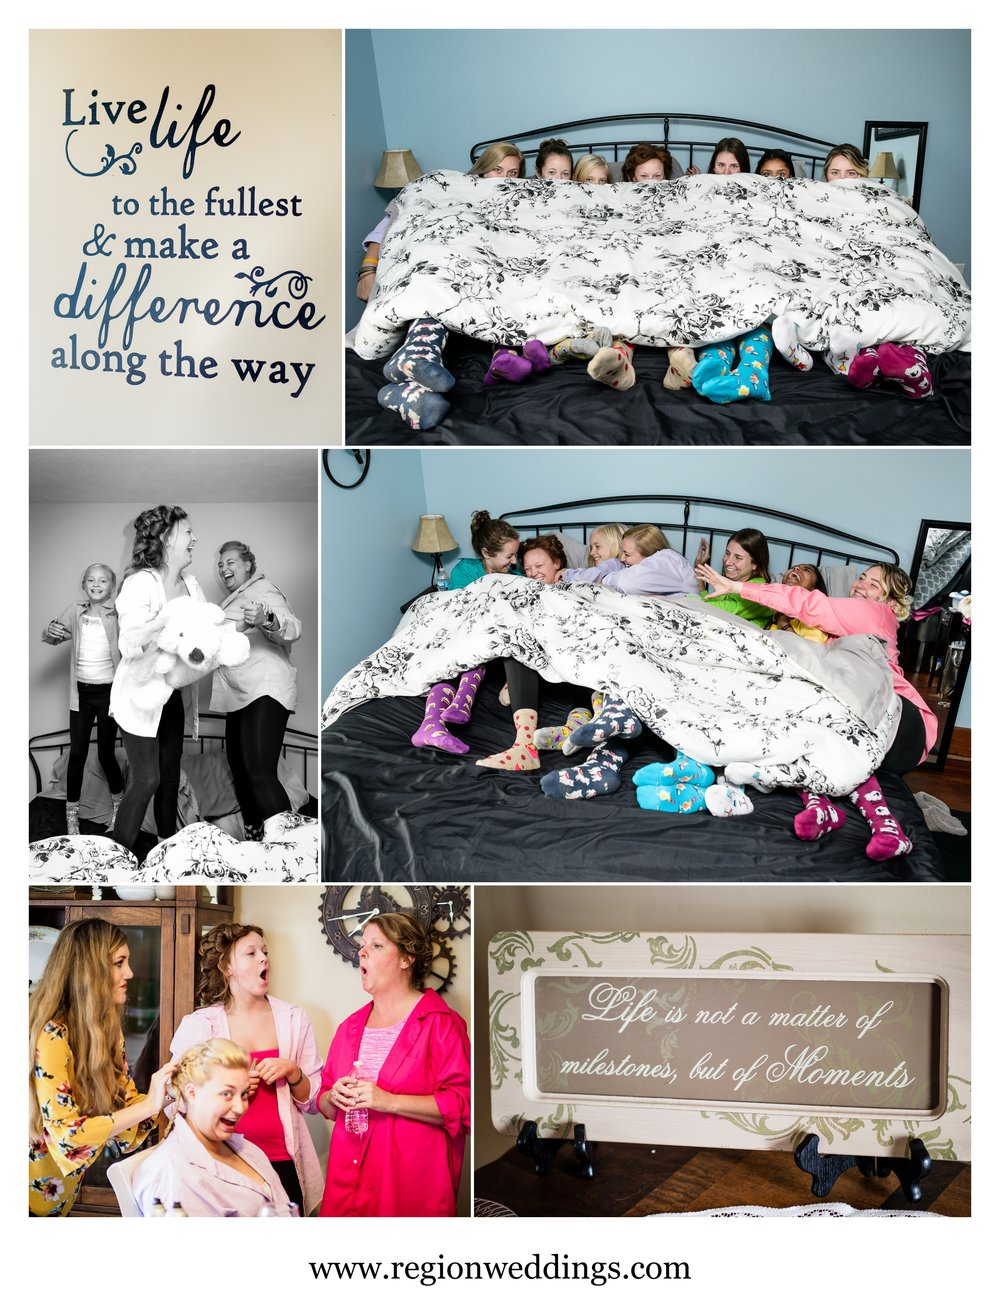 Fun photos with the bride and her bridesmaids.